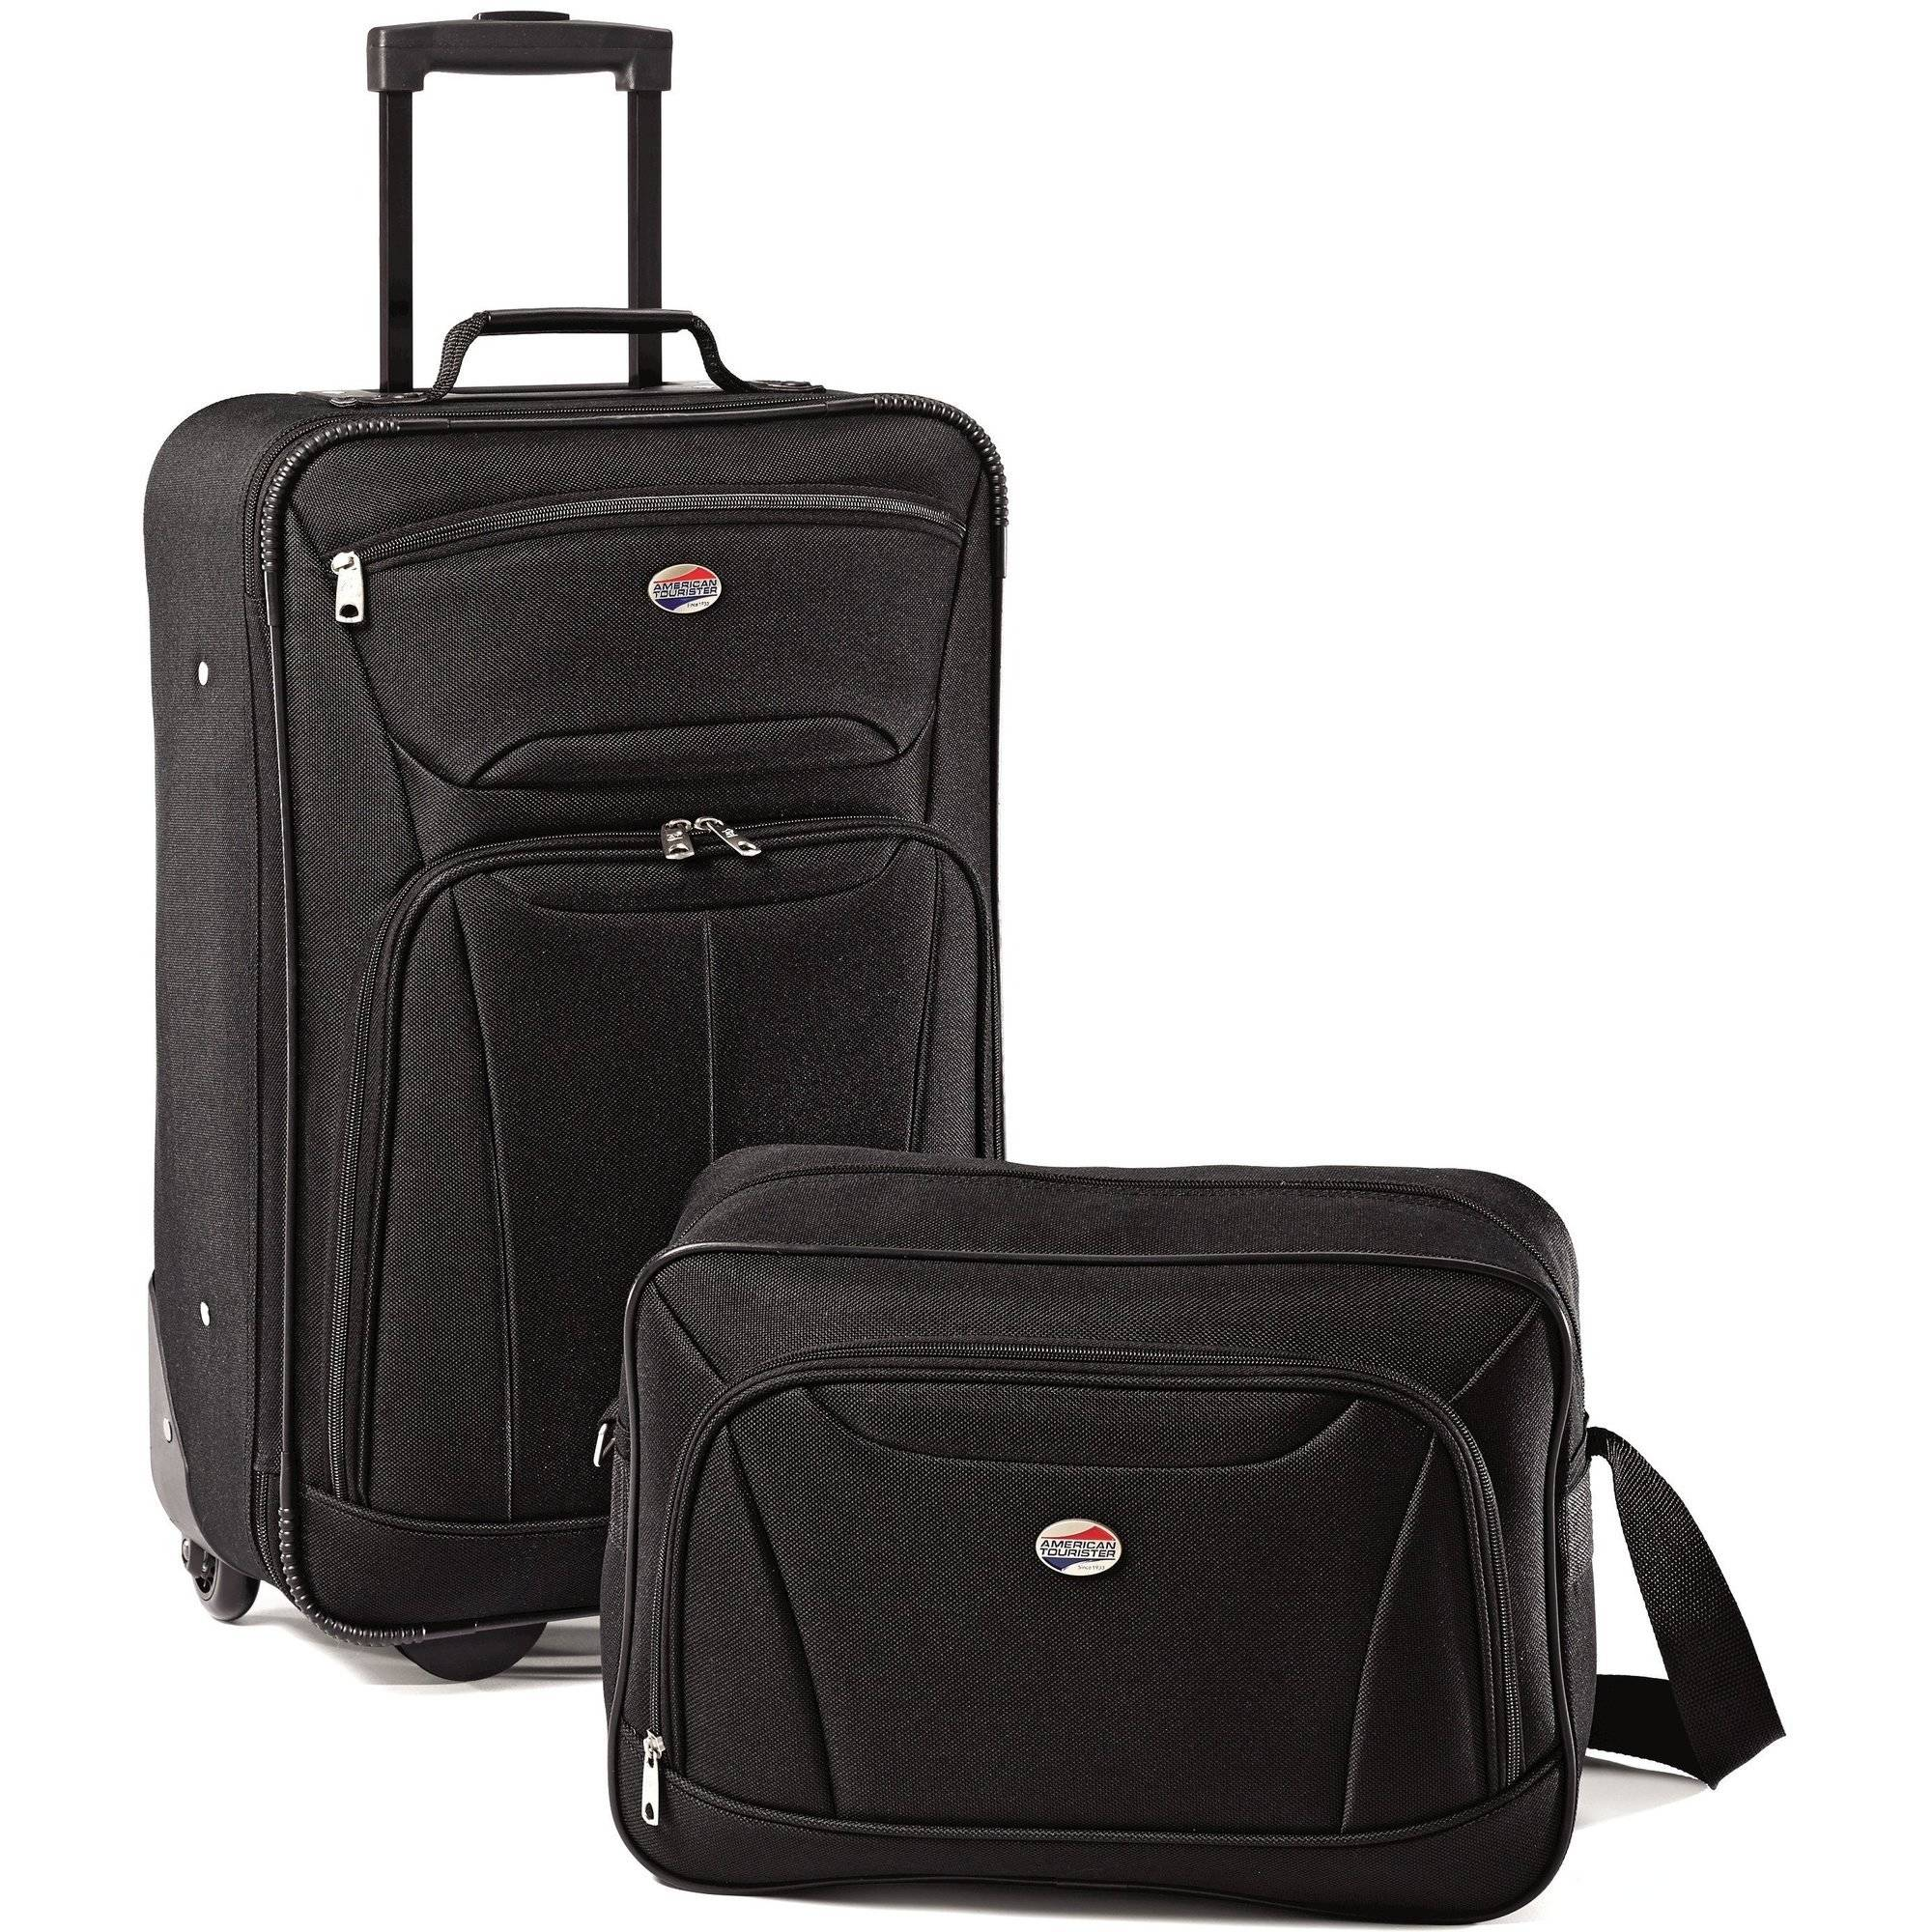 American Tourister Fieldbrook II 2-Piece Set - Walmart.com